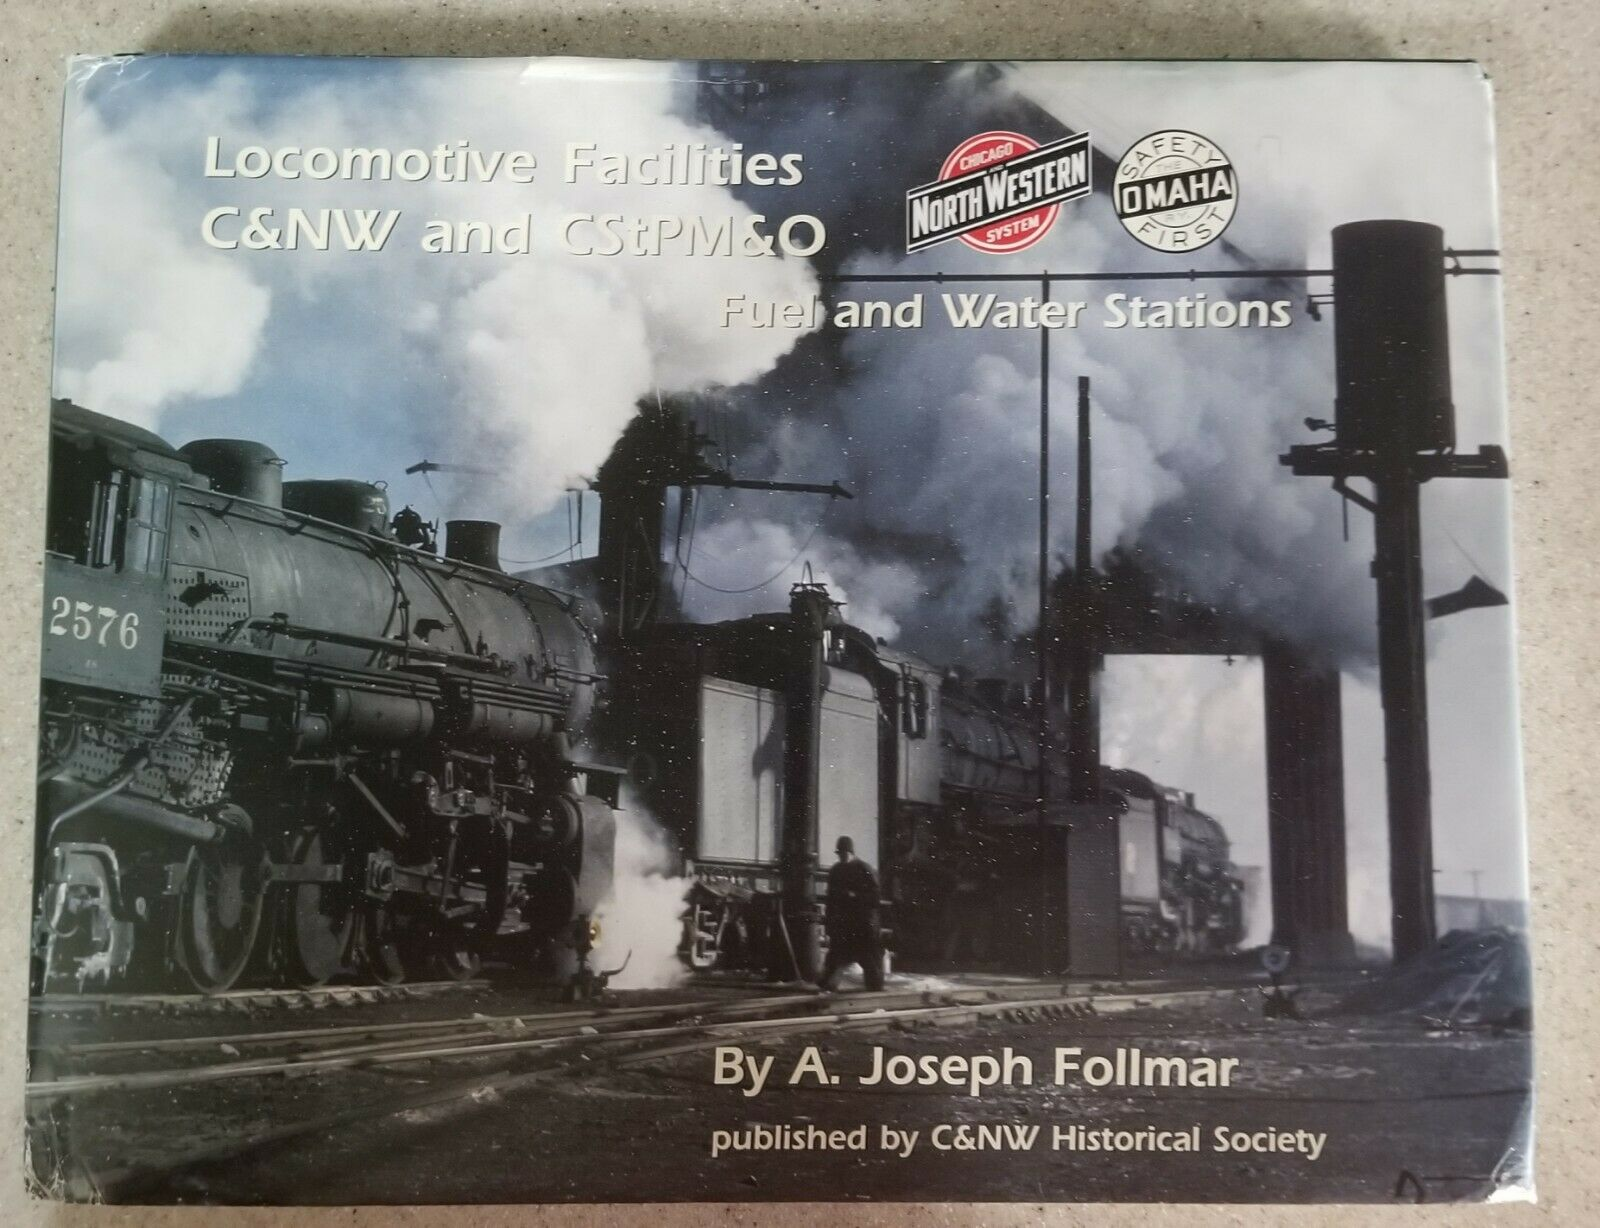 Locomotive Facilities C & Northwestern By A. Joseph Follmar Book |